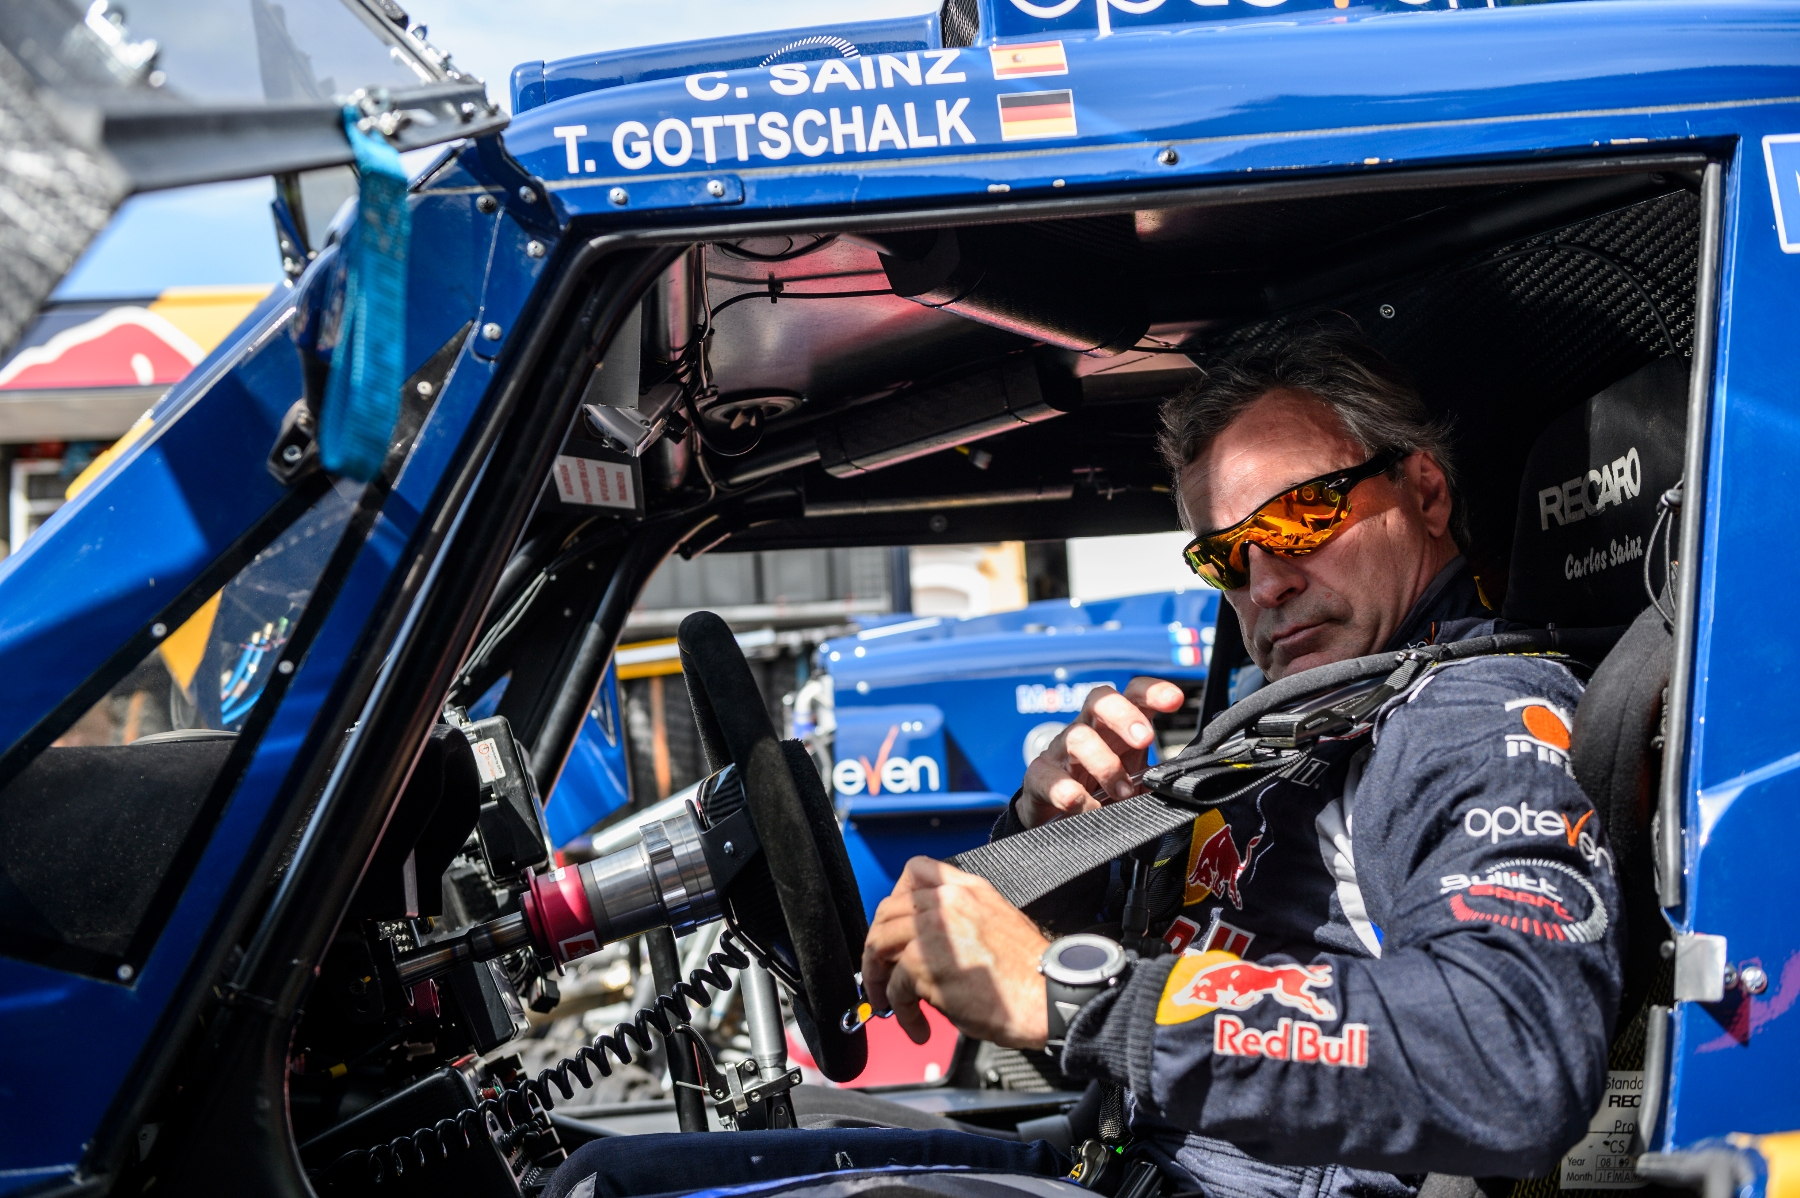 Carlos Sainz gets ready for the car testing prior Dakar Rally in Rosario, Argentina on January 3nd, 2014